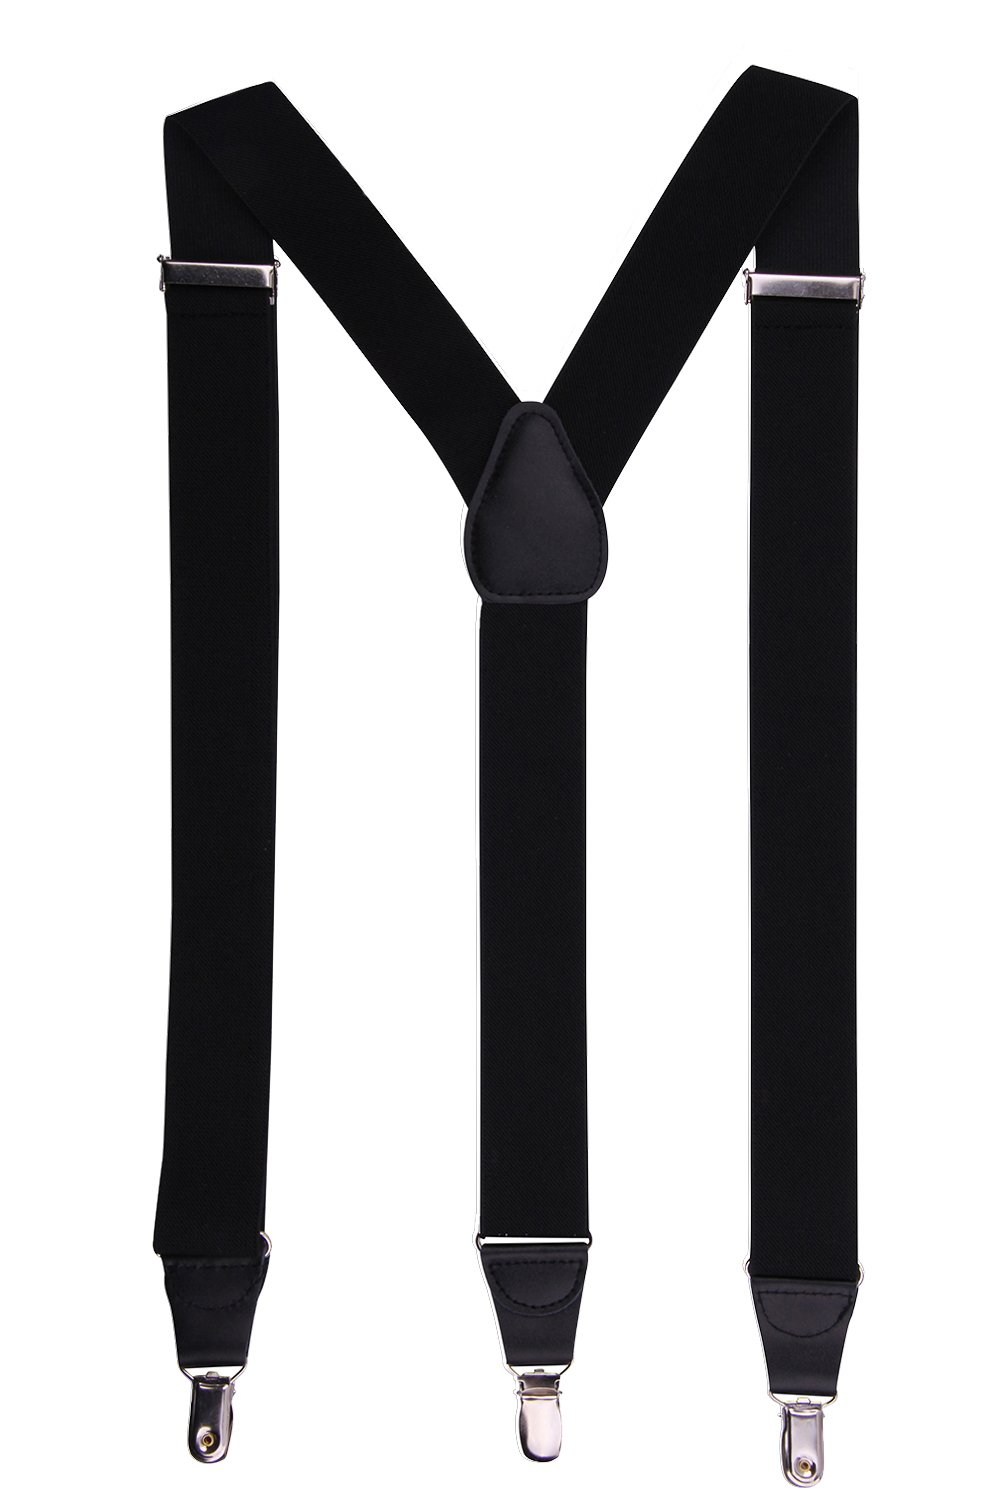 JINIU Men's Fashion Solid Straight Clip On Cool Formal Leather Suspenders Color Black Size One Size